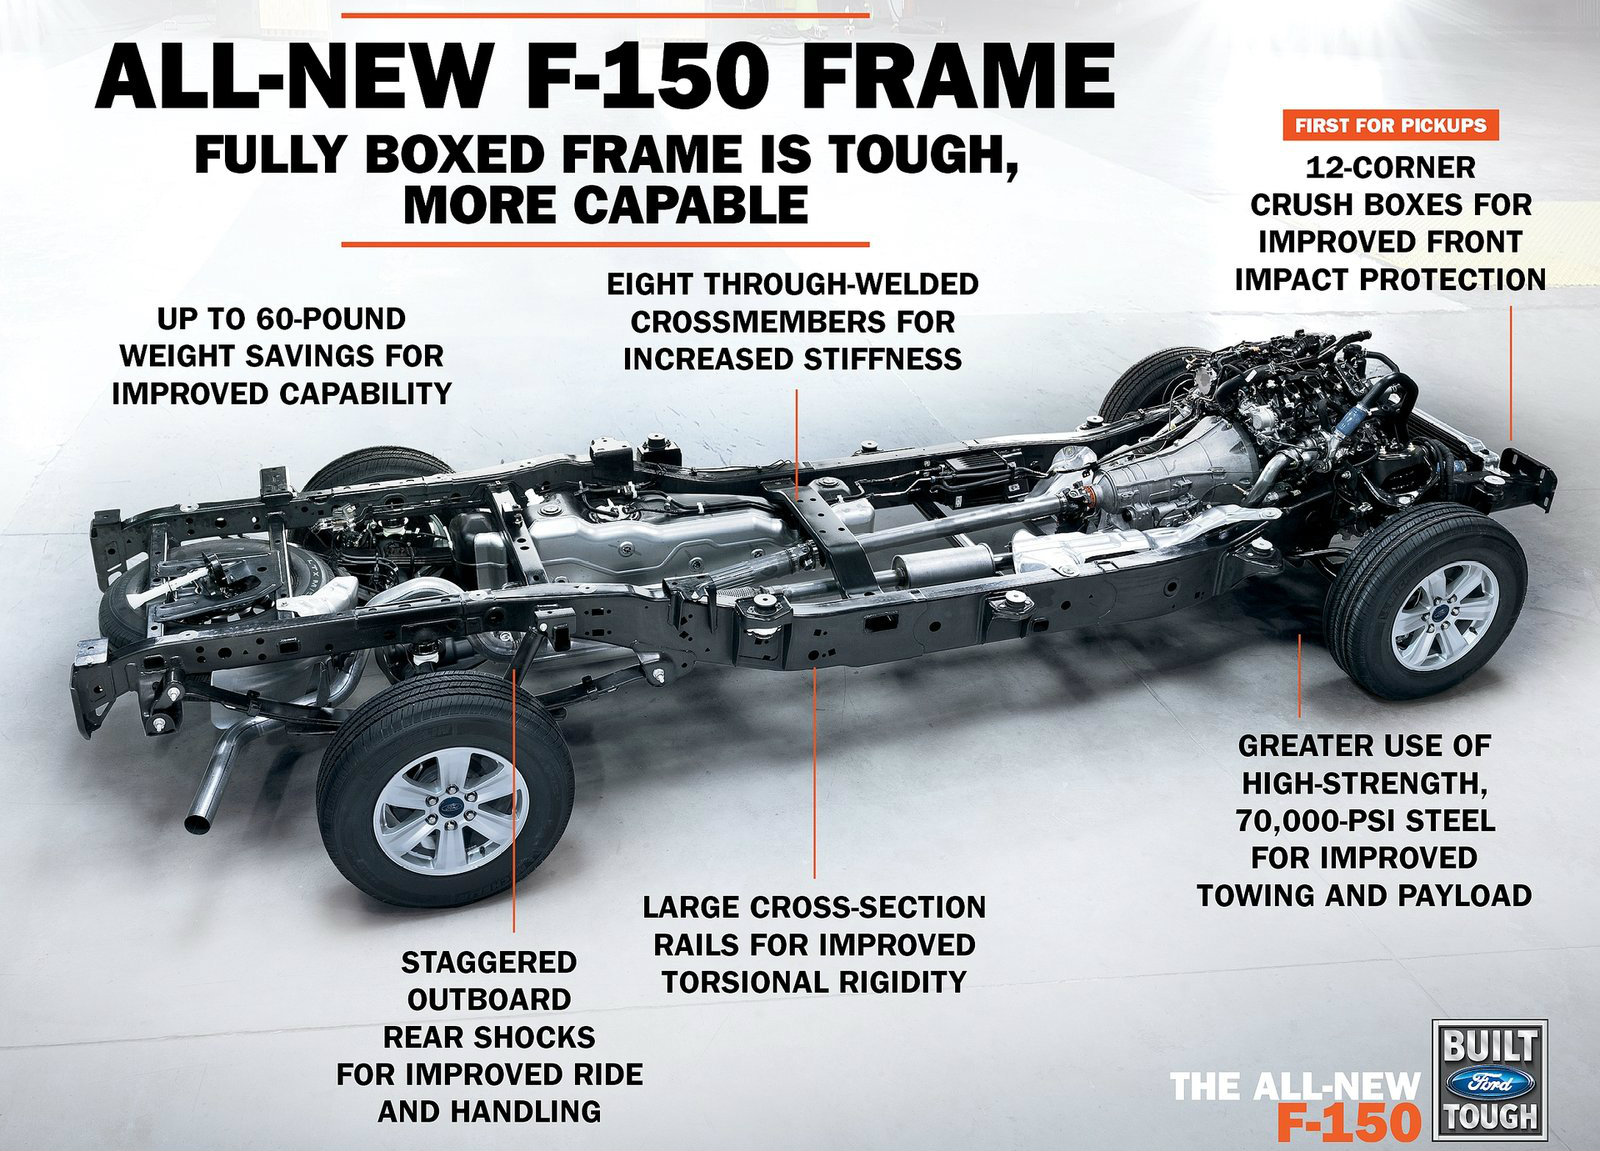 2015 Ford F-150 #5/5